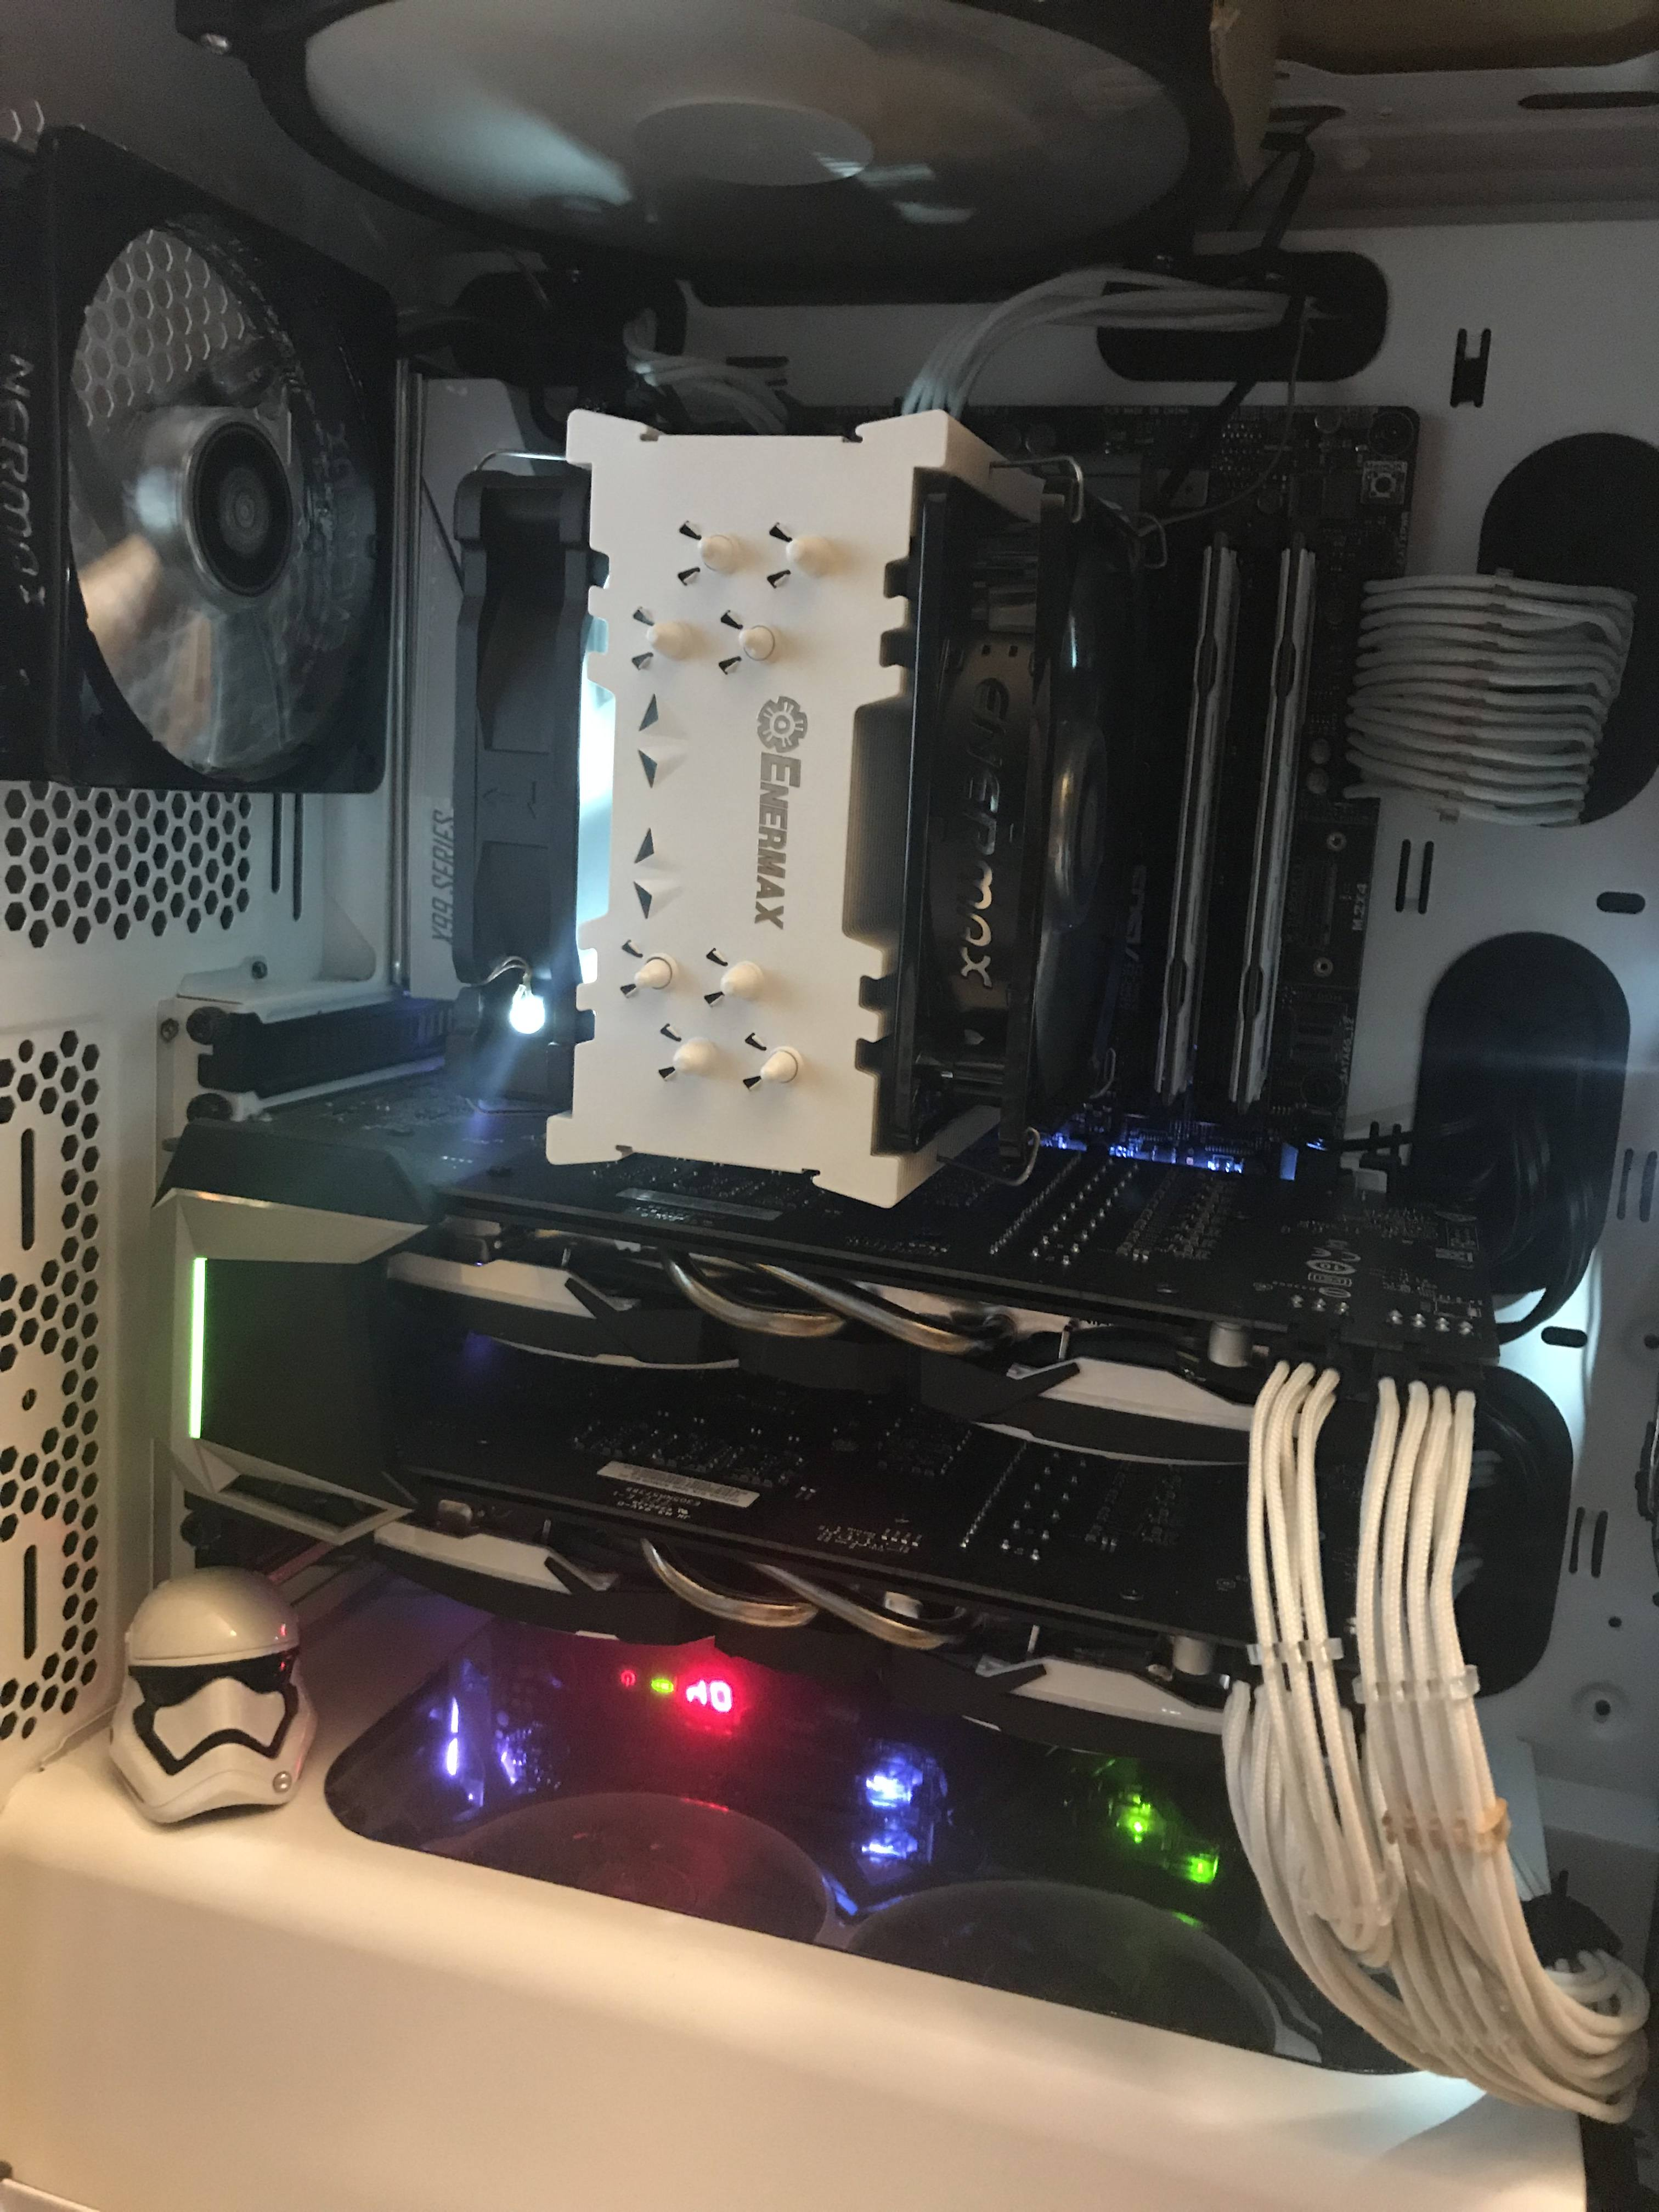 Aio Miner suggestions on converting a nice gaming pc to a mining rig